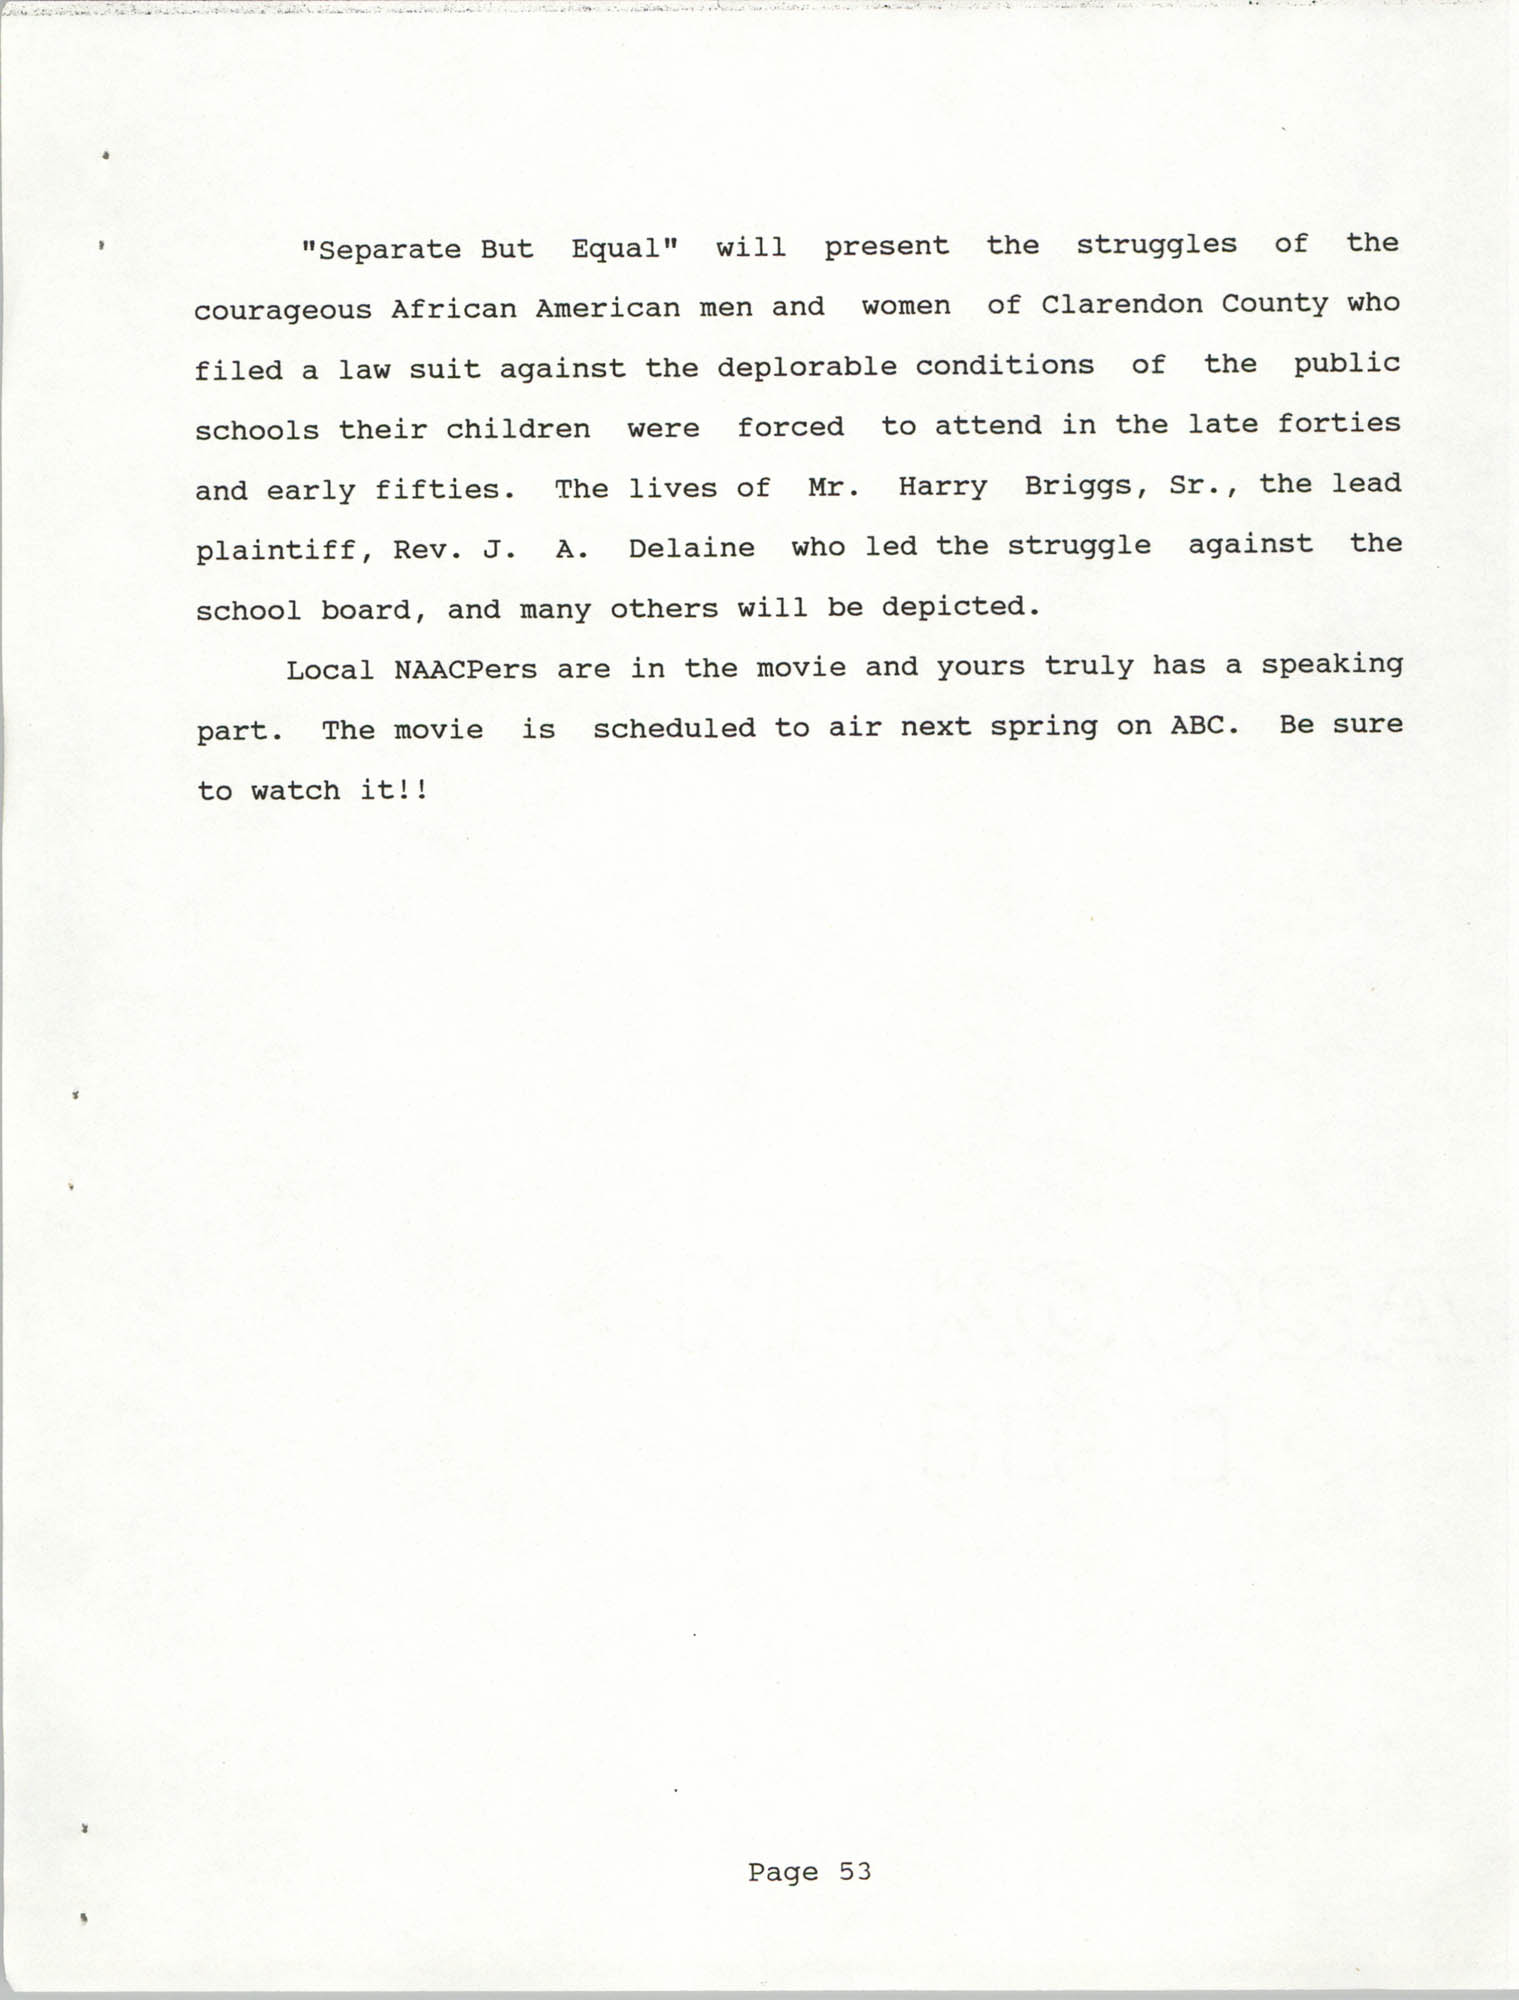 South Carolina Conference of Branches of the NAACP, 1990 Annual Report, Part Two, Page 53